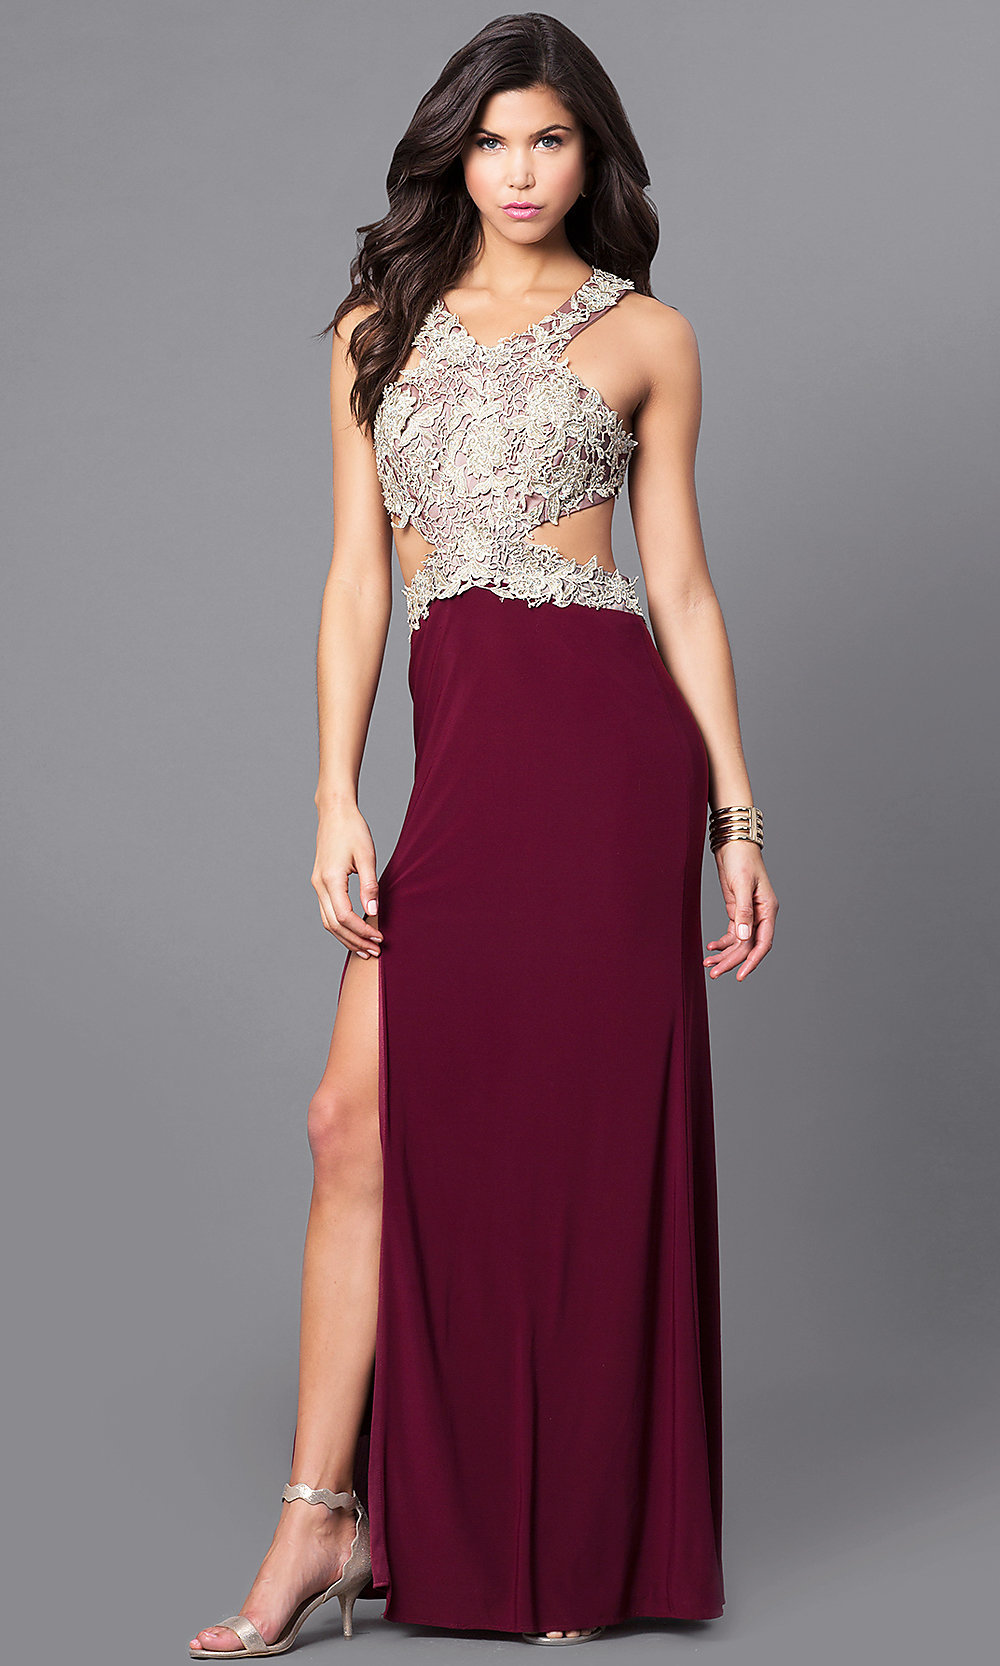 Gold Lace-Applique Junior-Size Wine Red Prom Dress